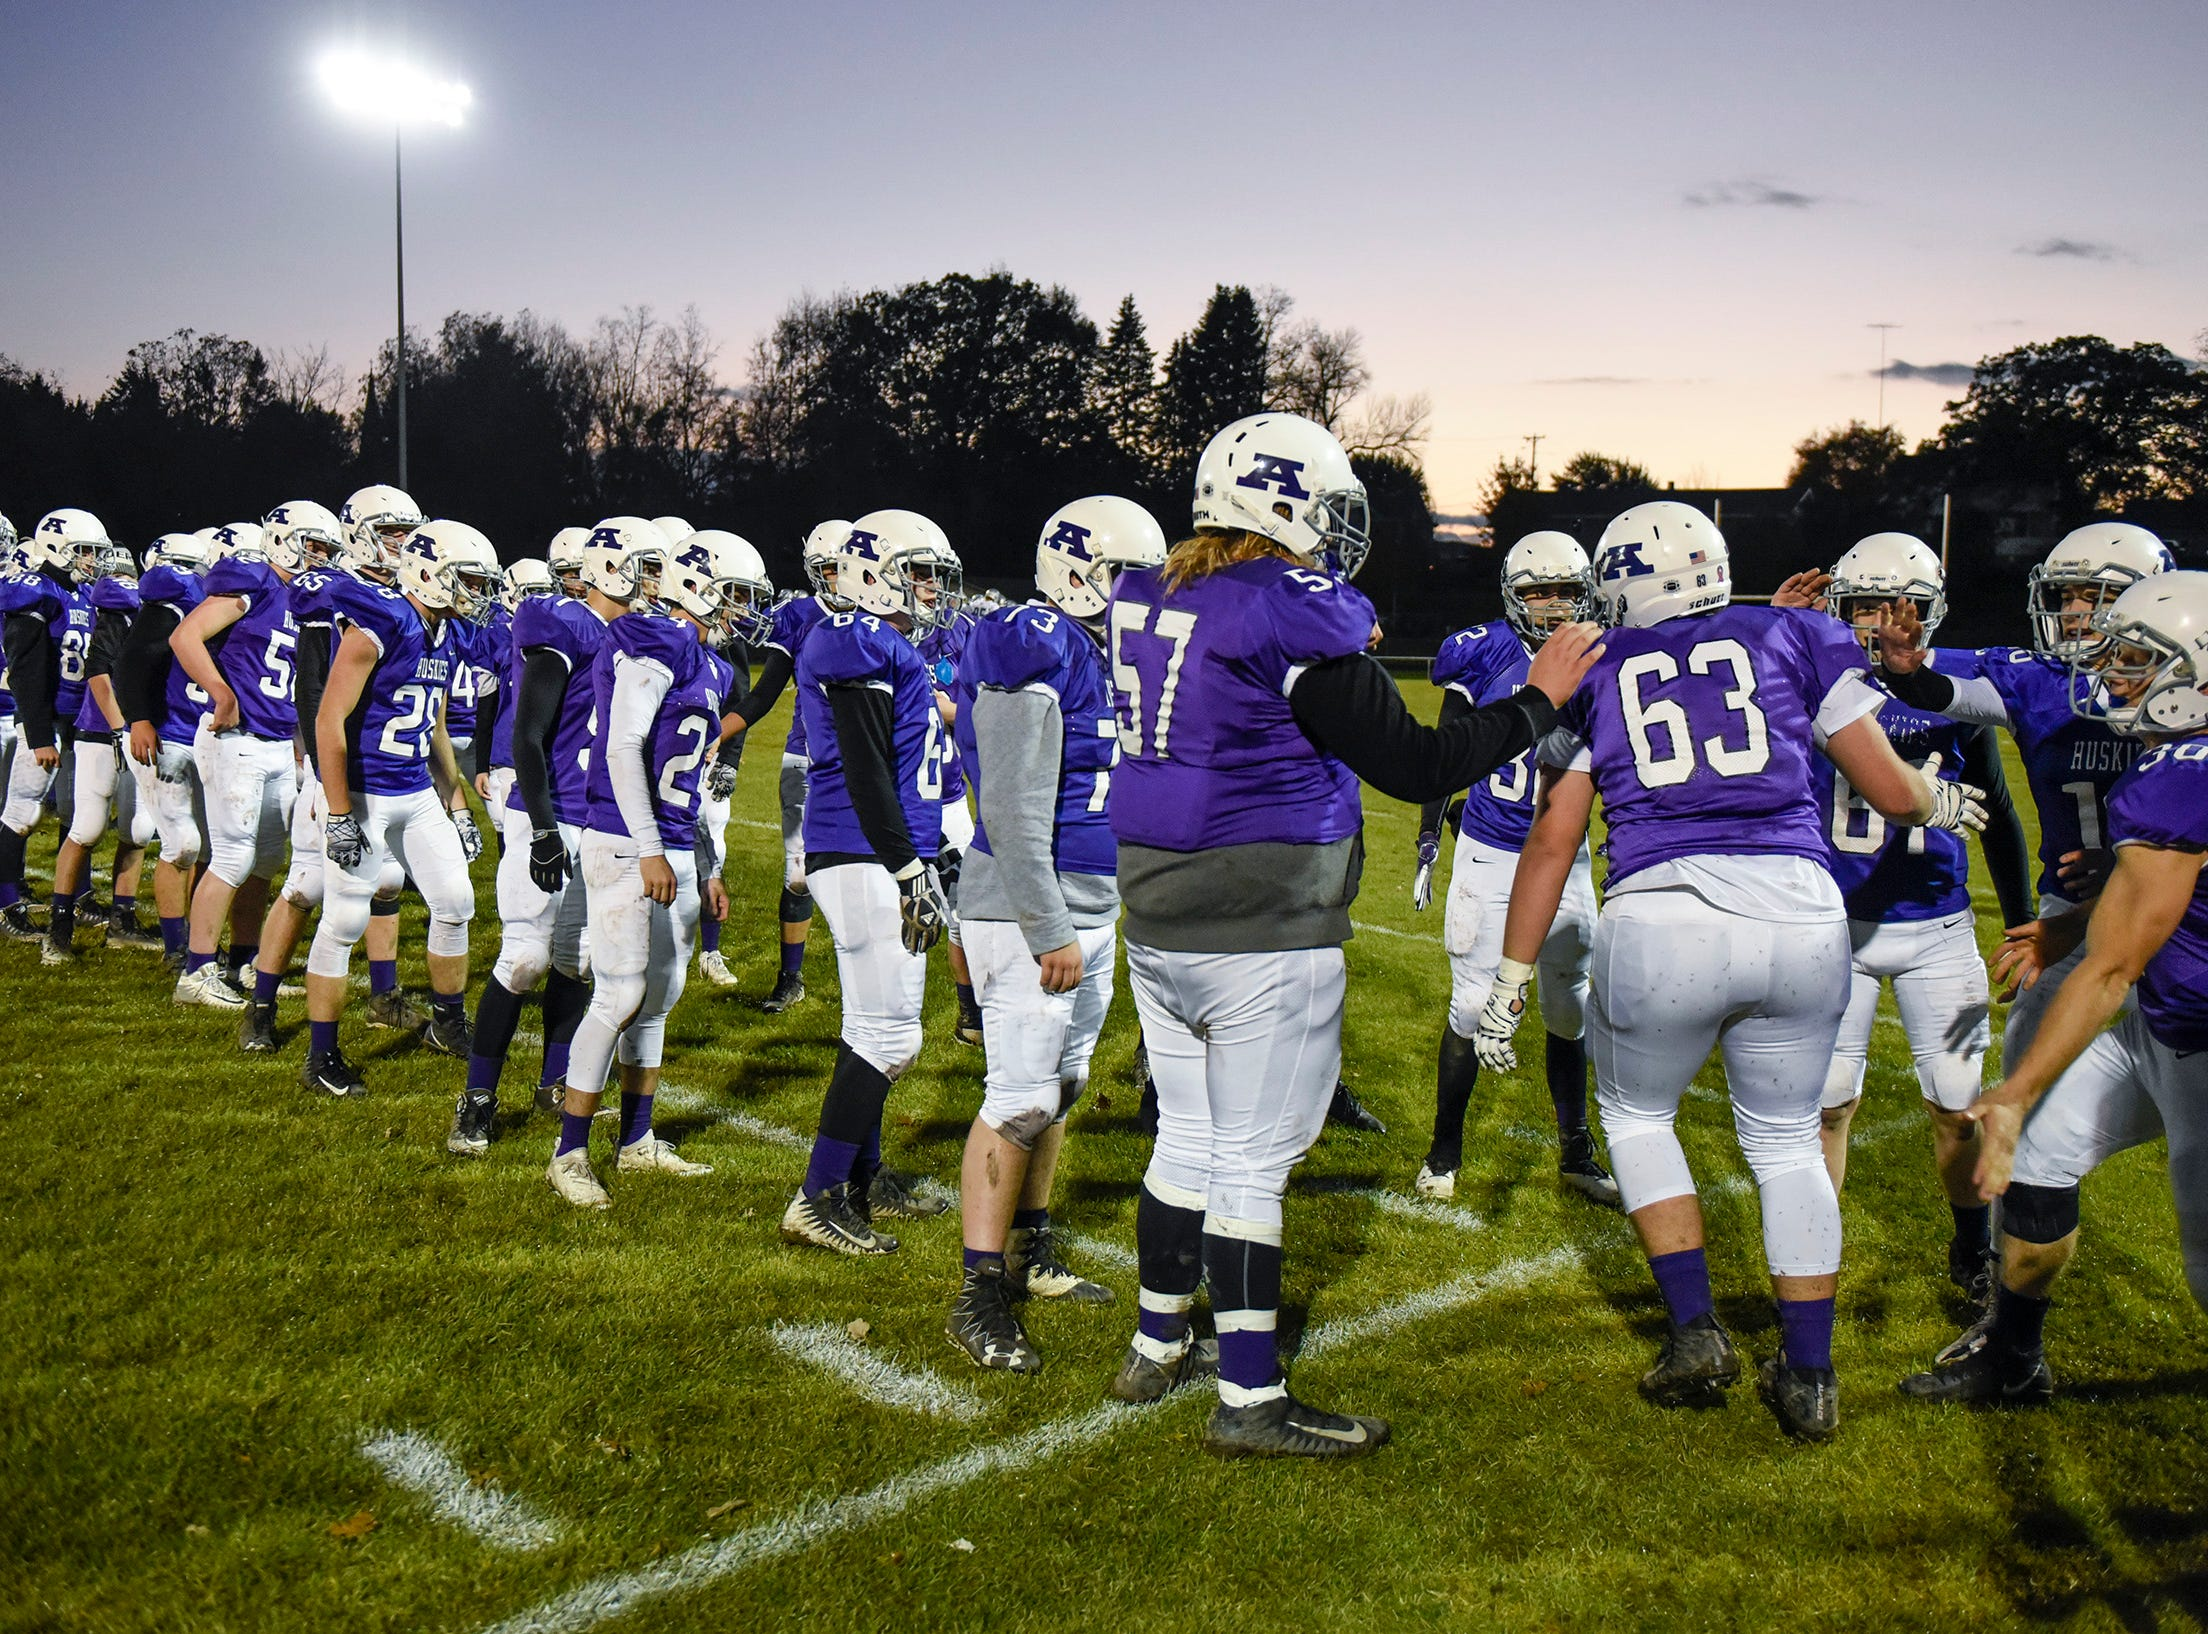 Albany players are introduced before their game against Foley Friday, Oct. 12, in Albany.